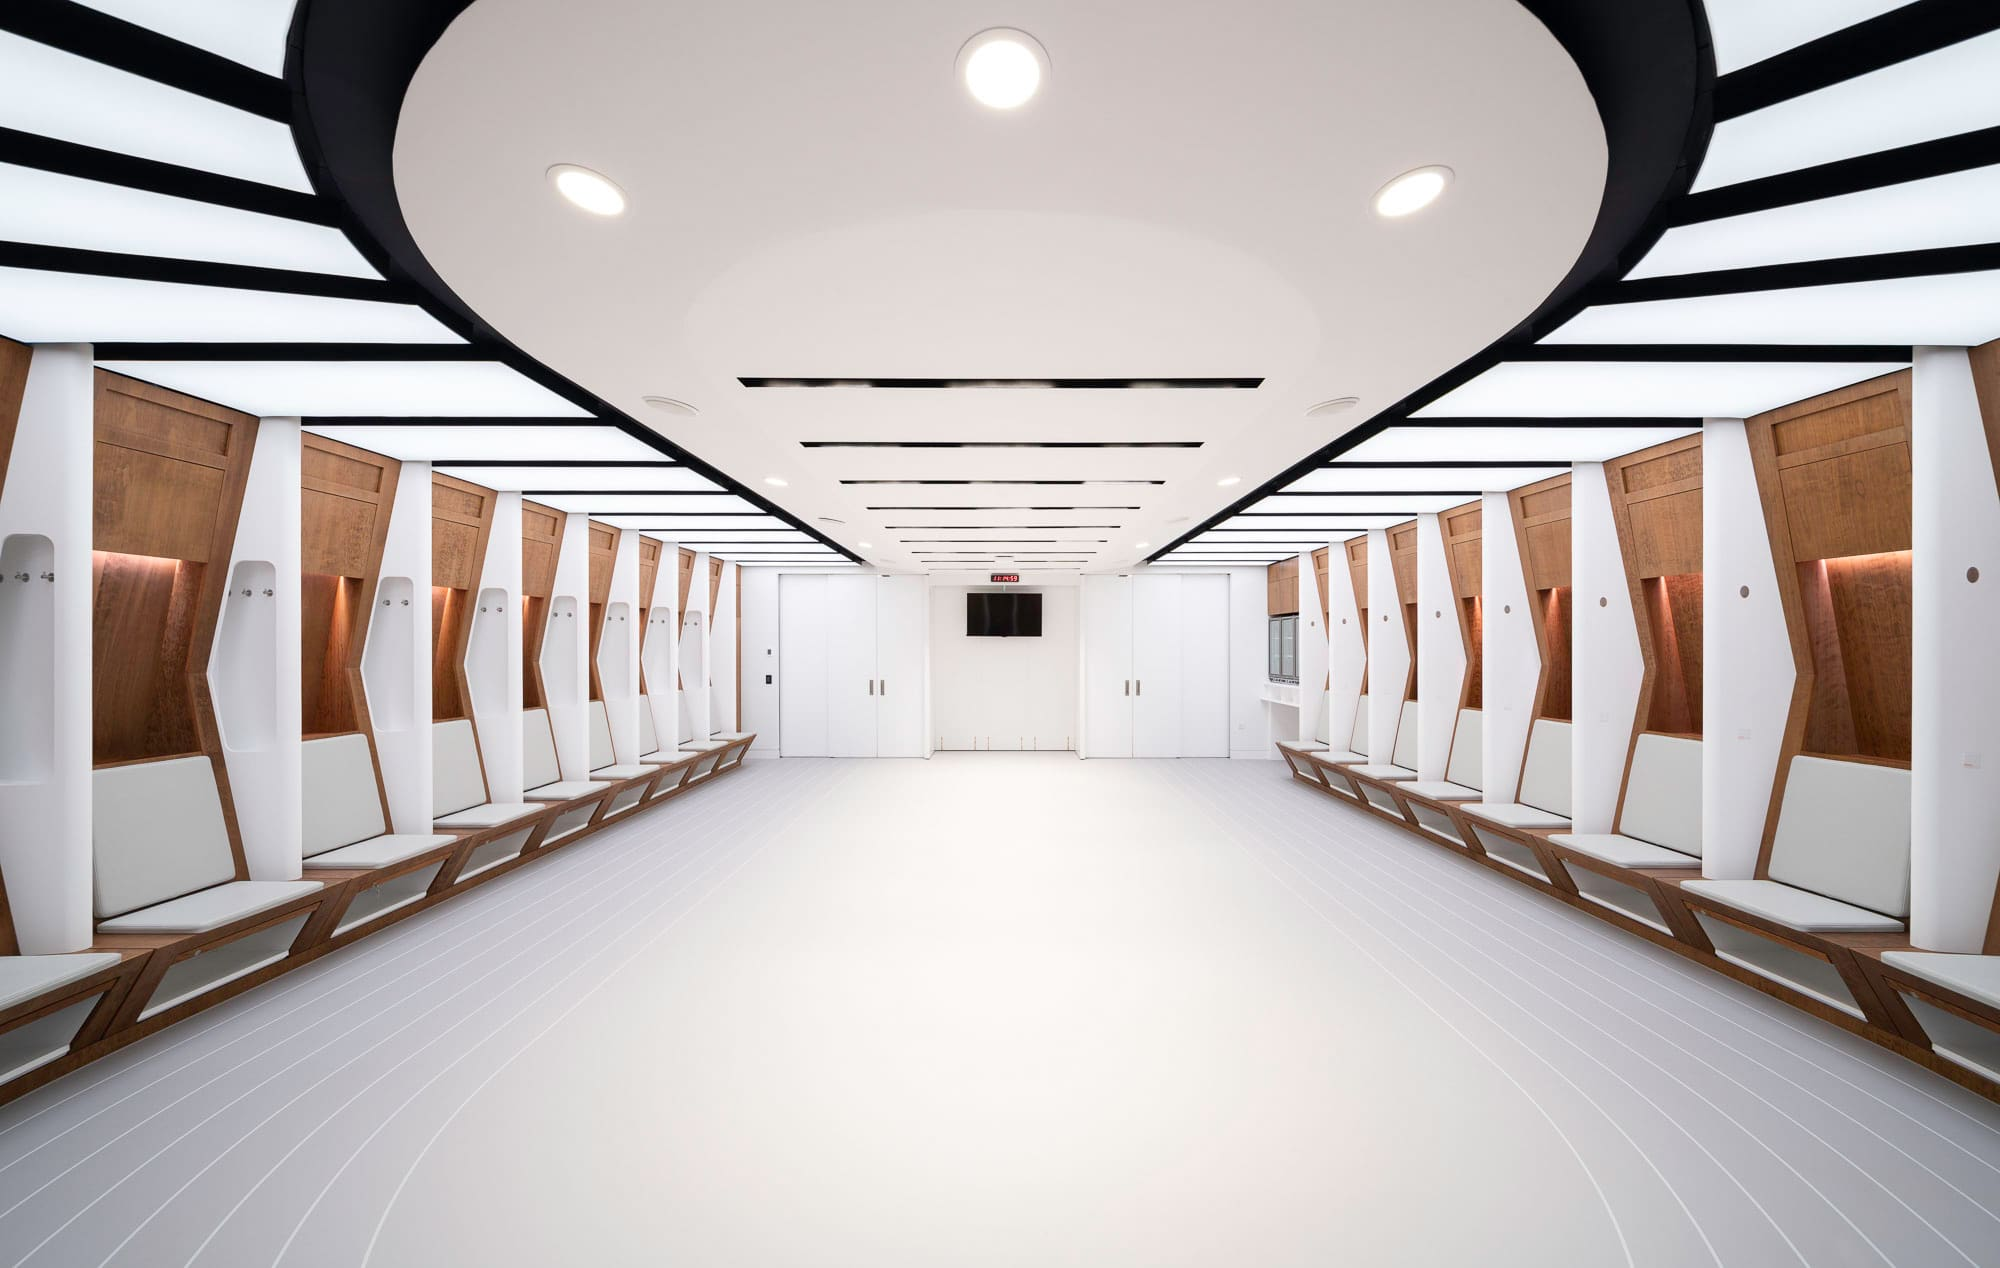 https://wooarchitects.com/wp-content/uploads/2020/07/Wembley-Changing-Rooms-photo-by-Tom-Bird-21-web-1.jpg